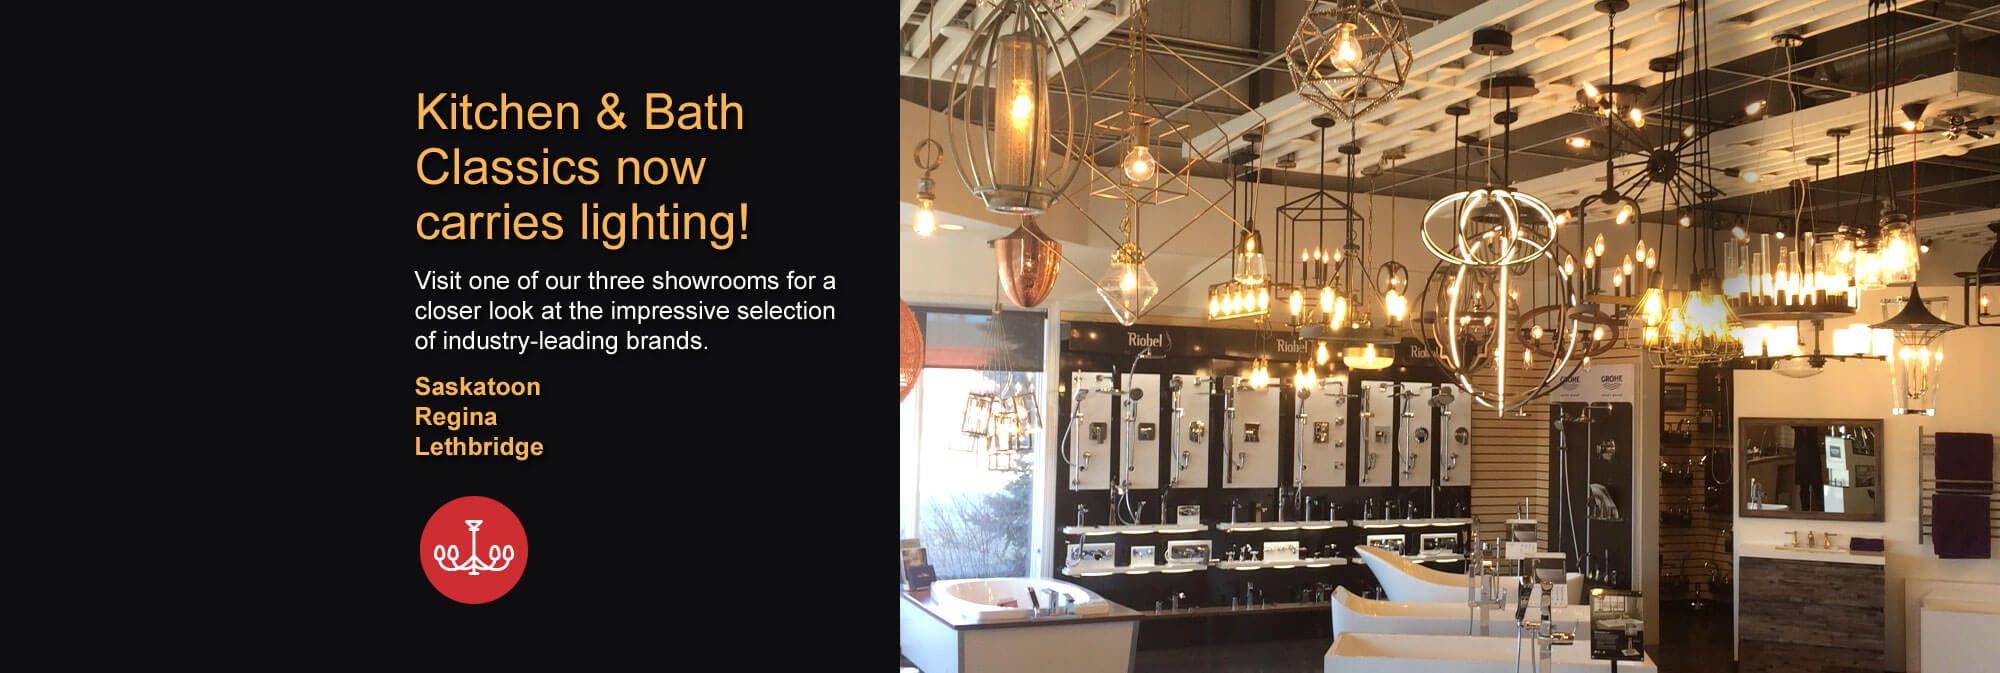 Kitchen & Bath Classics